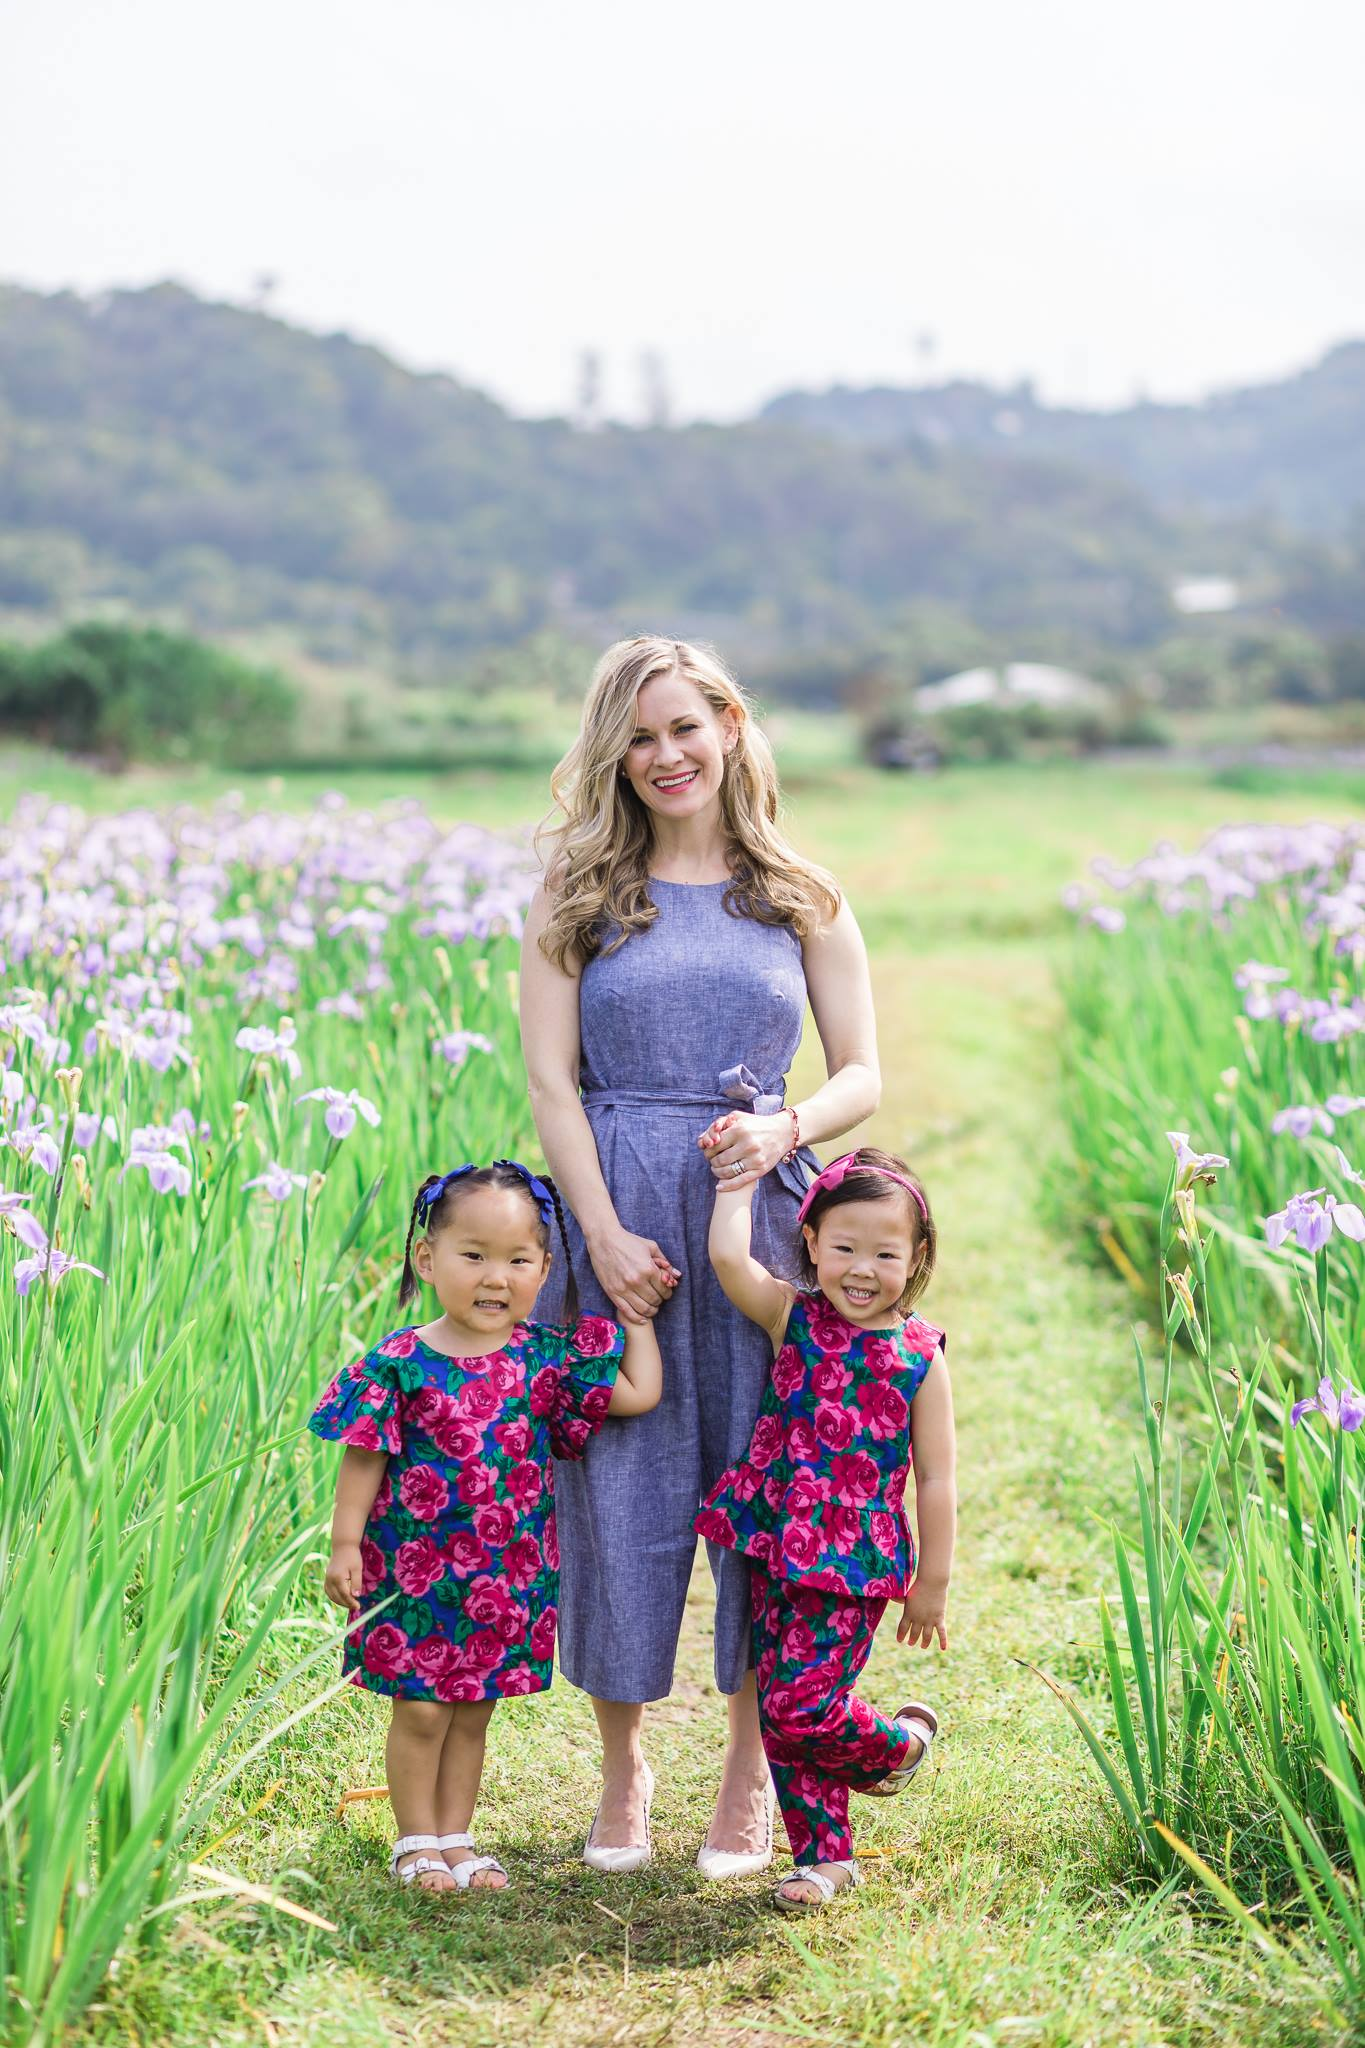 Okinawa iris field mommy and me7.jpg